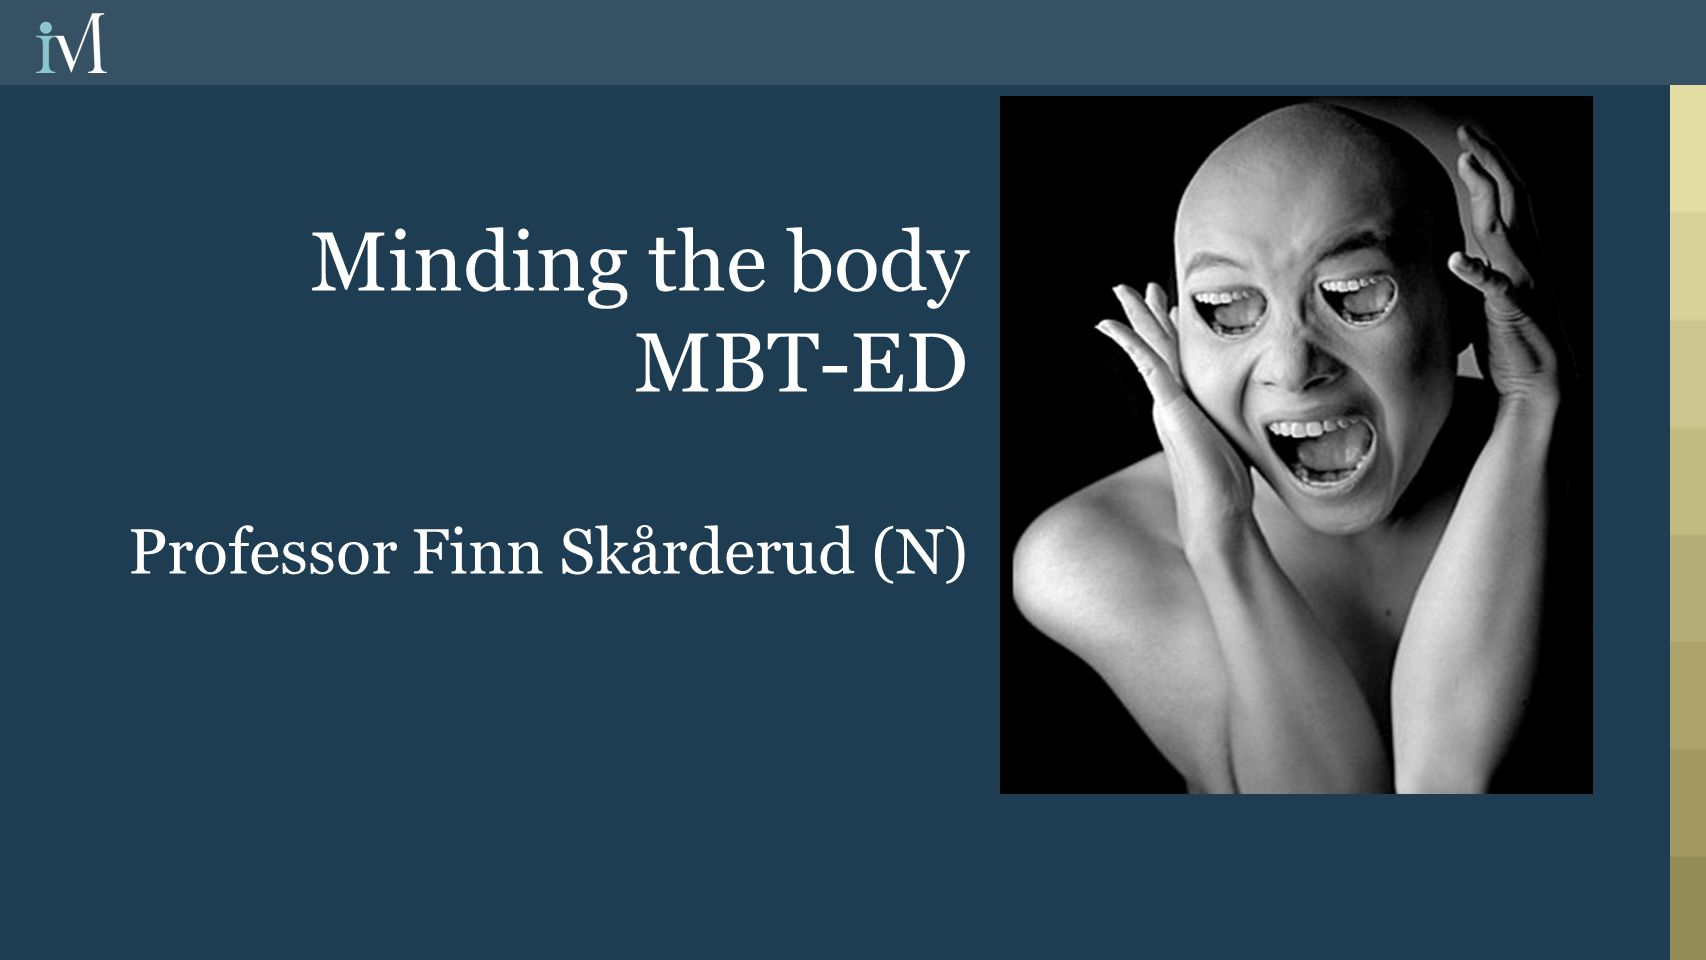 Minding the body MBT-ED Professor Finn Skårderud (N)